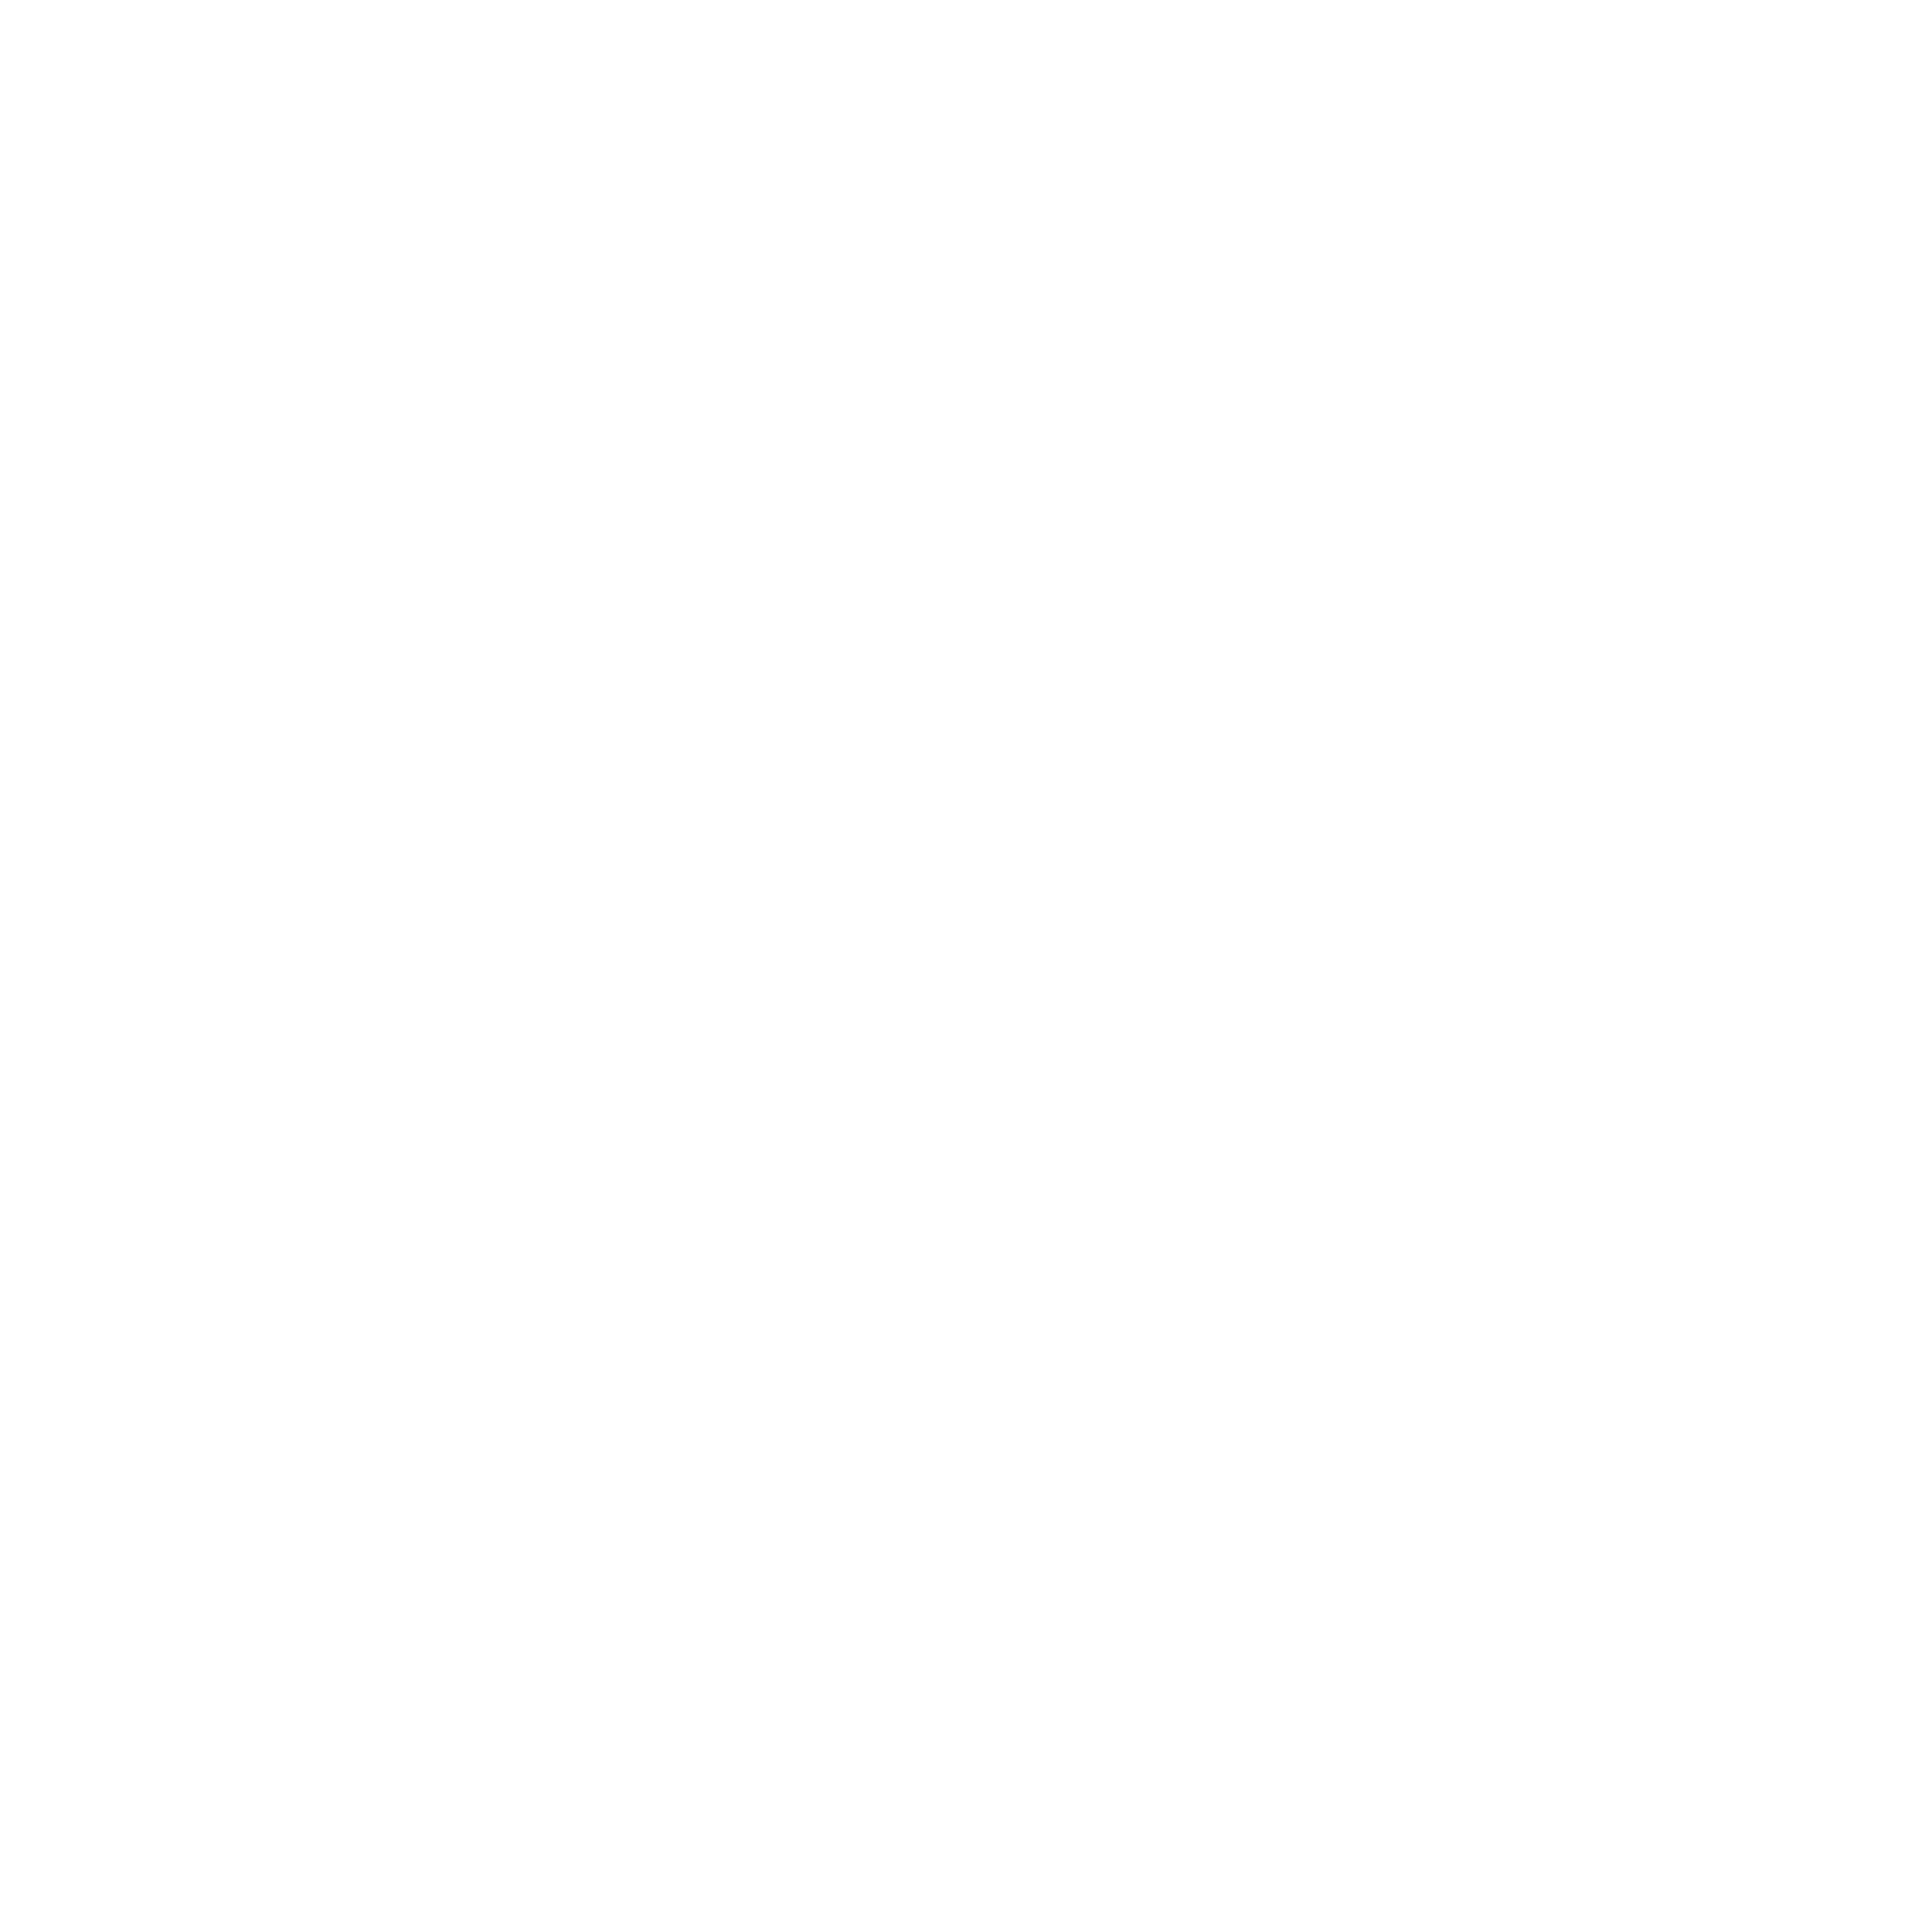 National Cyber Security Training Academy